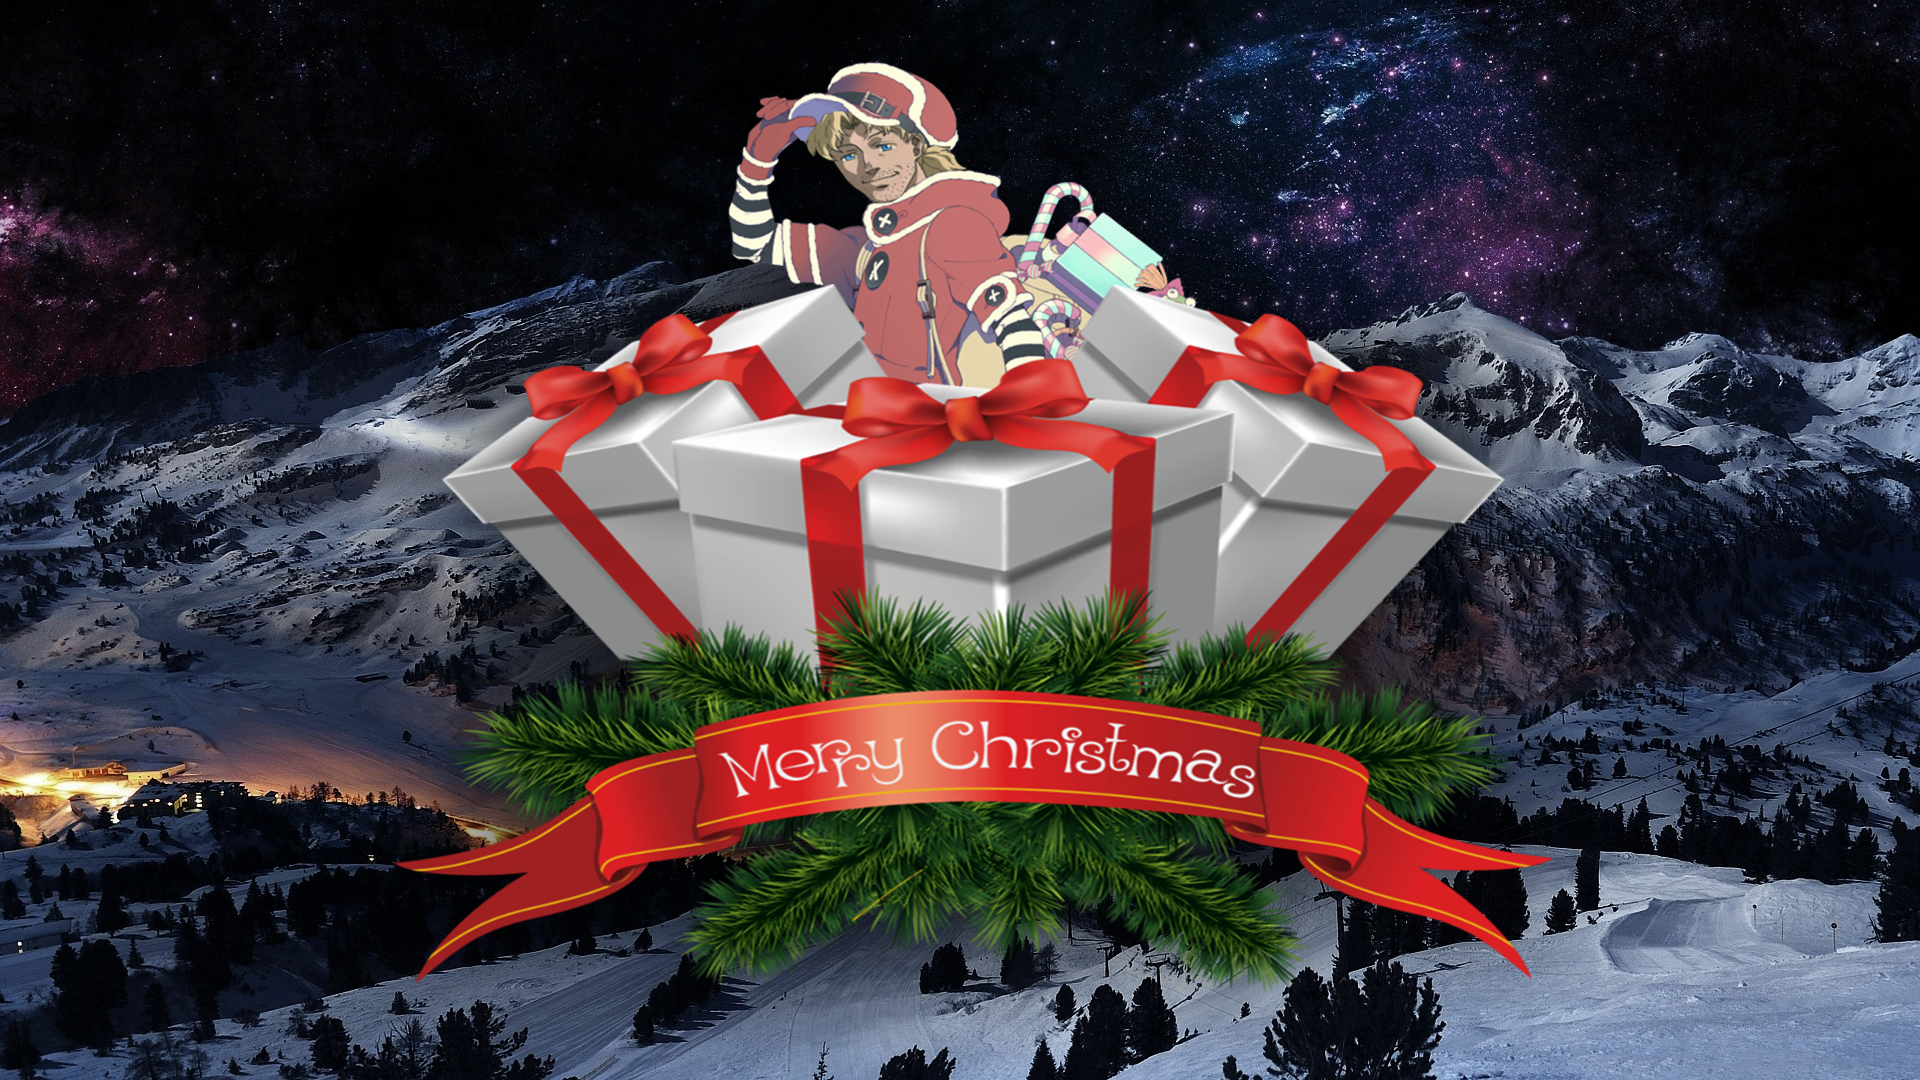 Merry Christmas 2015 png 5